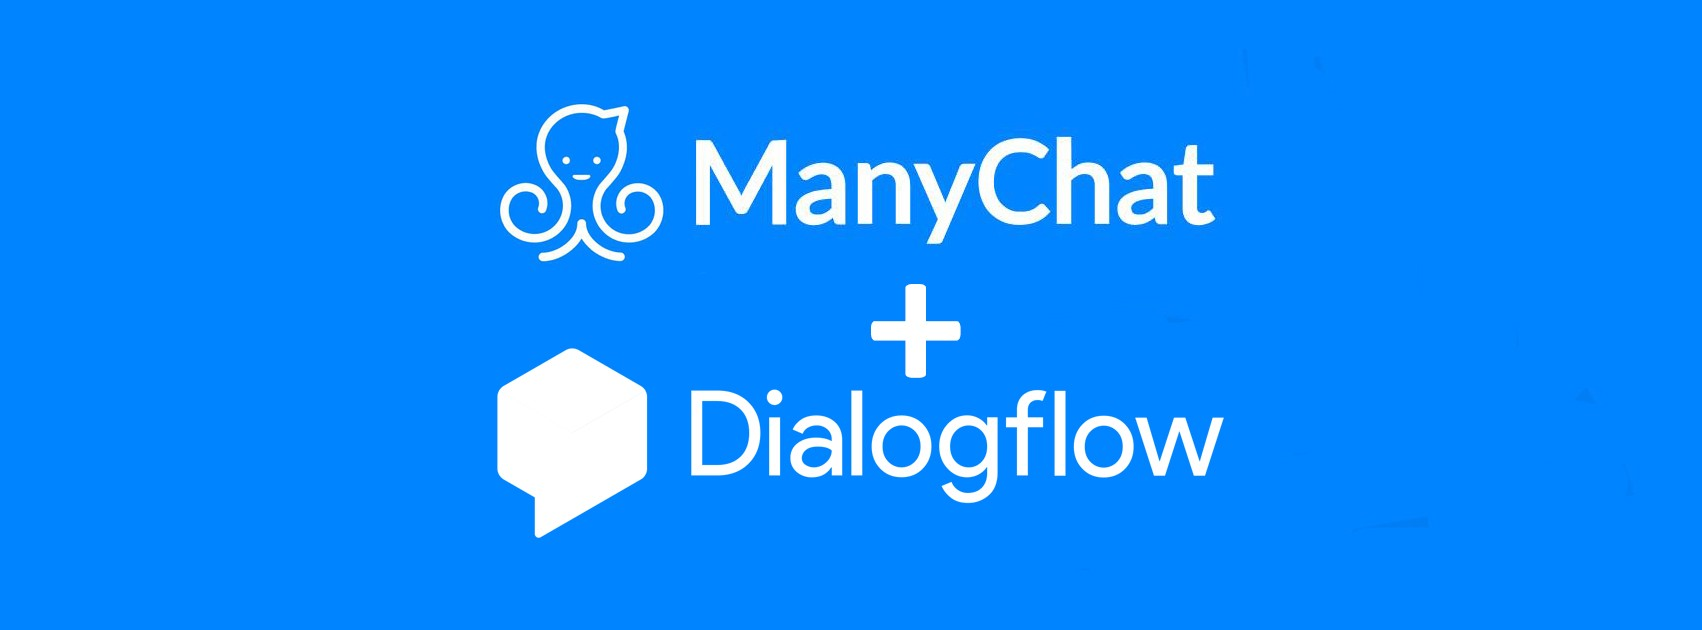 How to make your ManyChat bots smarter with Dialogflow